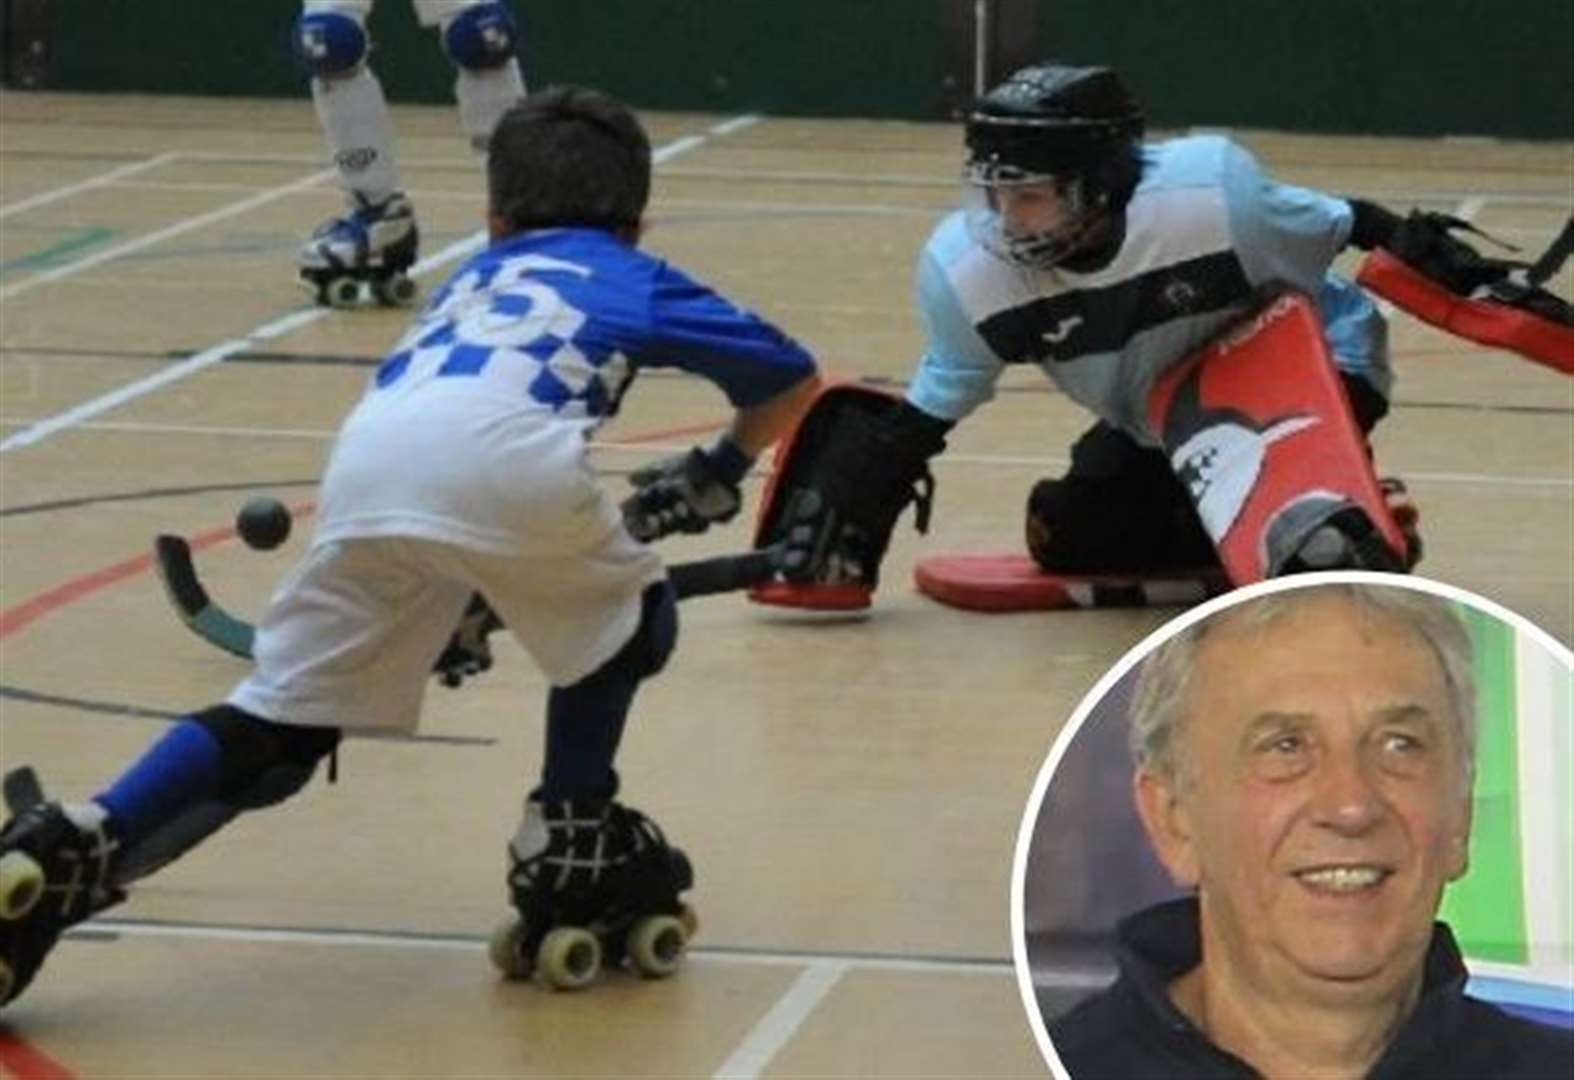 Our World of Sport: Roller Hockey